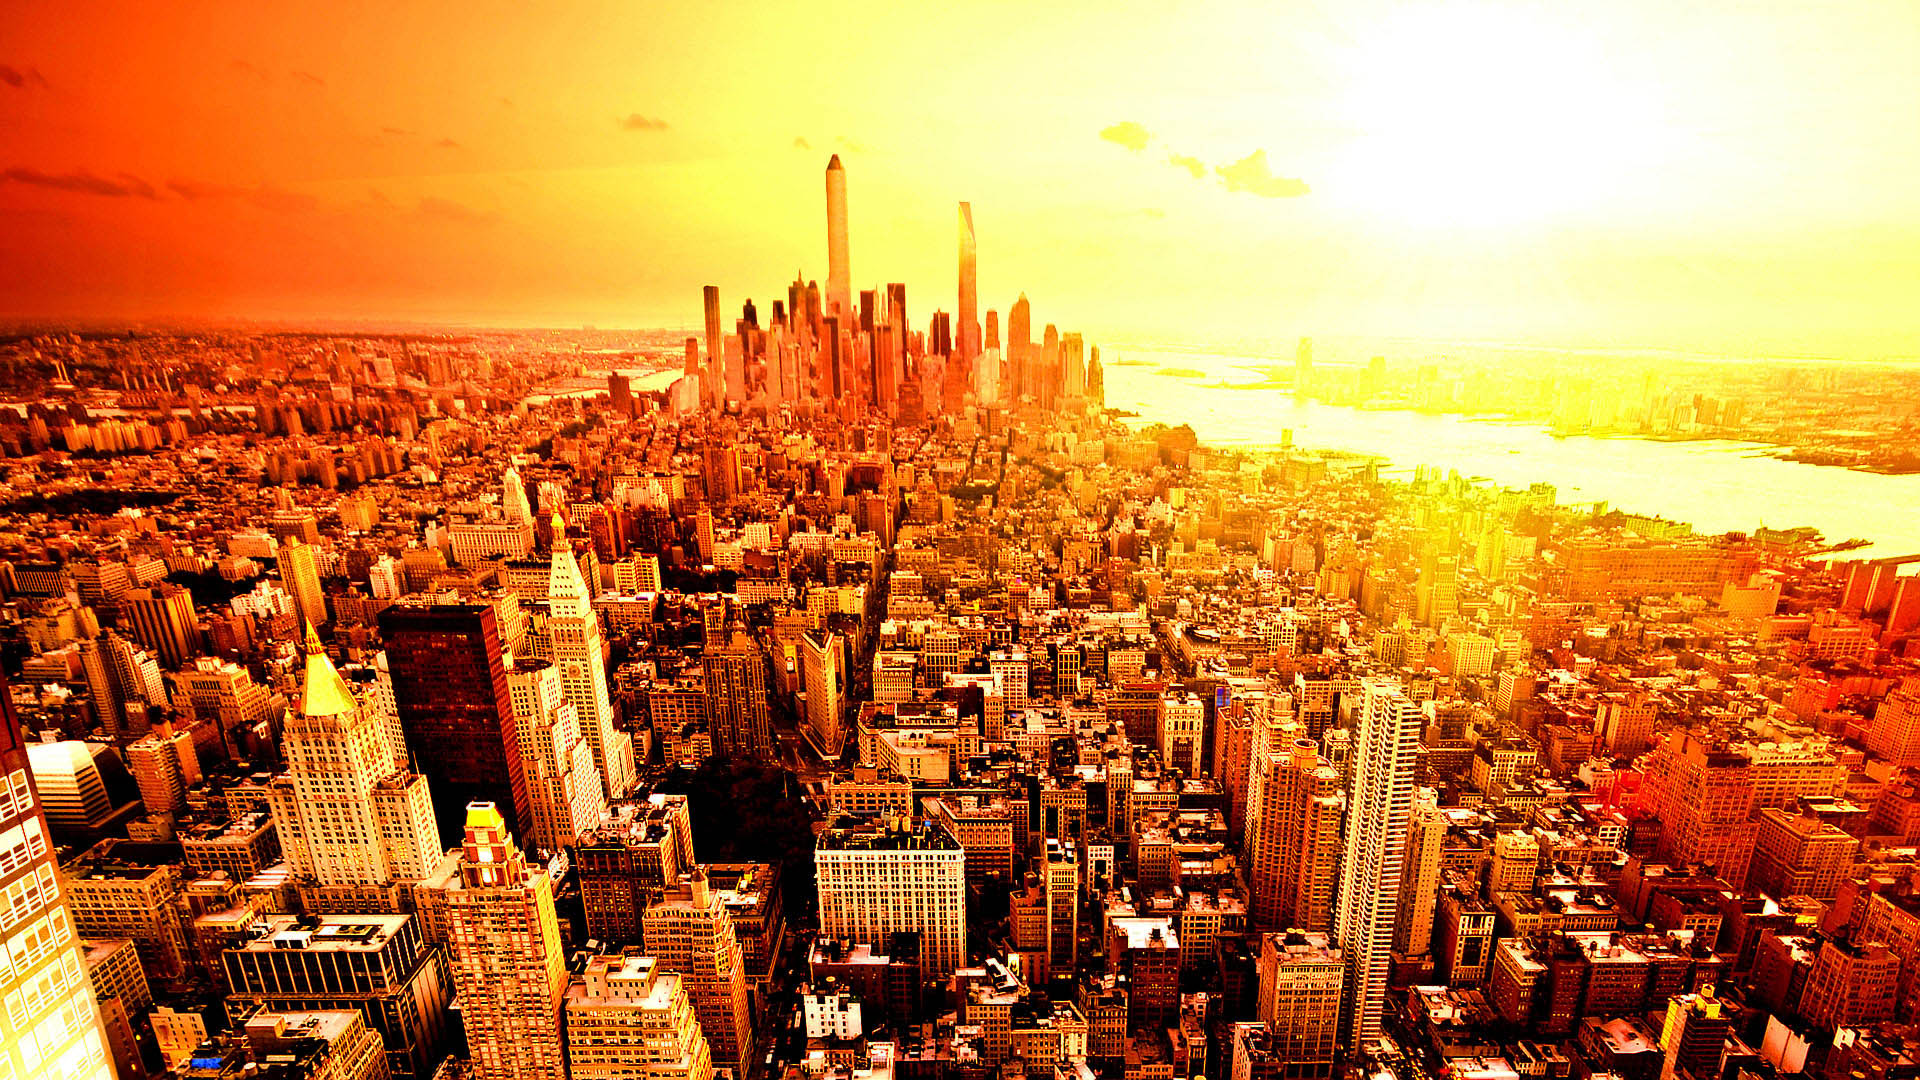 New York Desktop Background 1920x1080 1920x1080